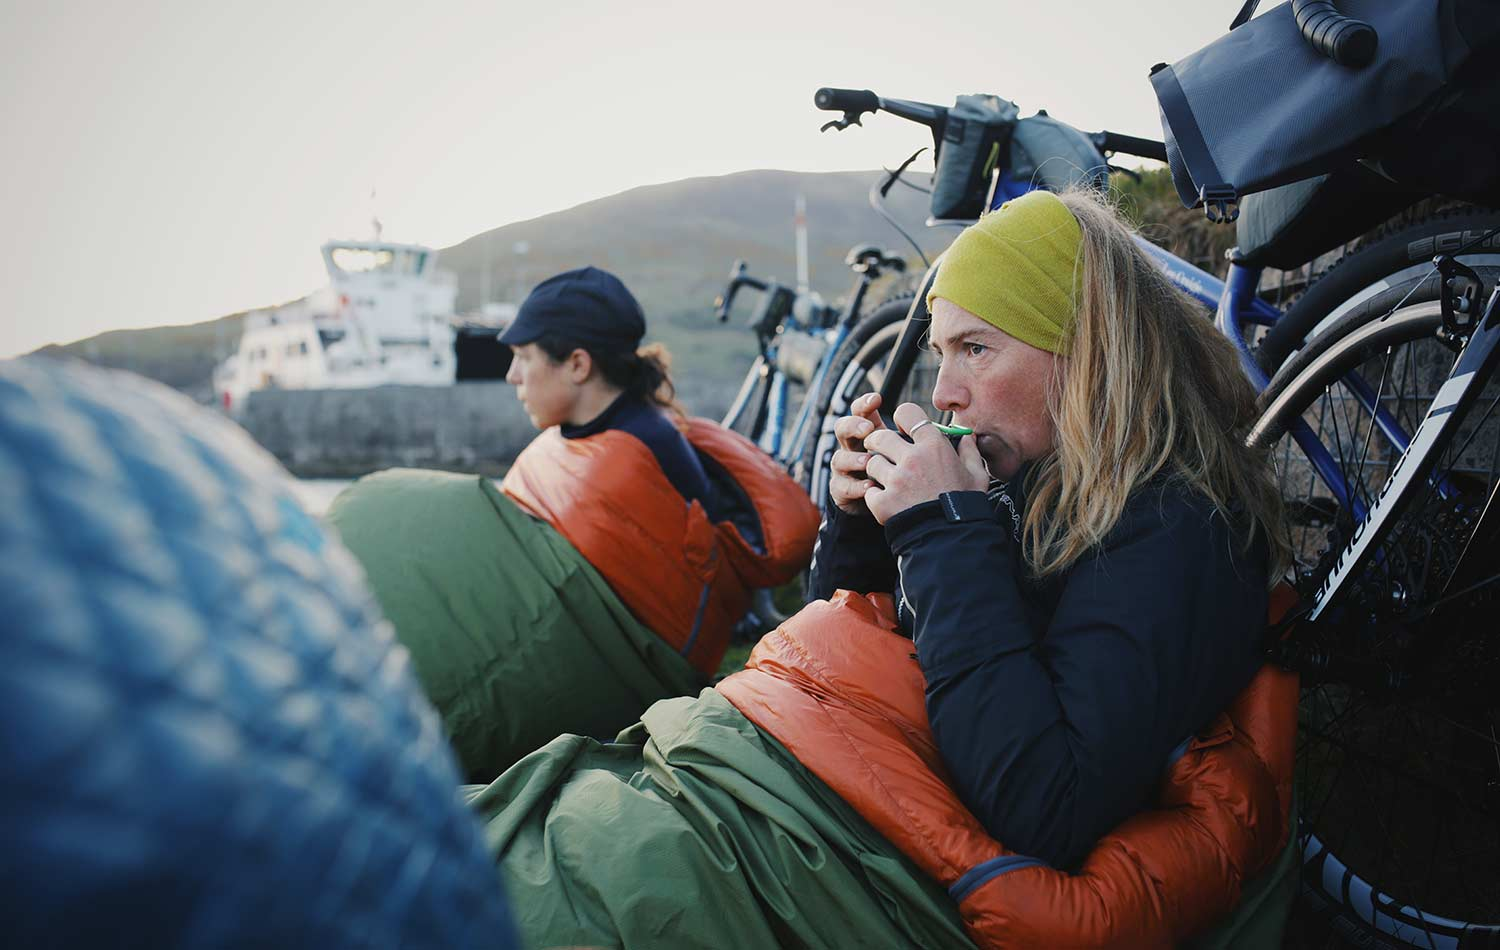 two women sitting into their sleeping bags, next to their bikes drinking a hot drink